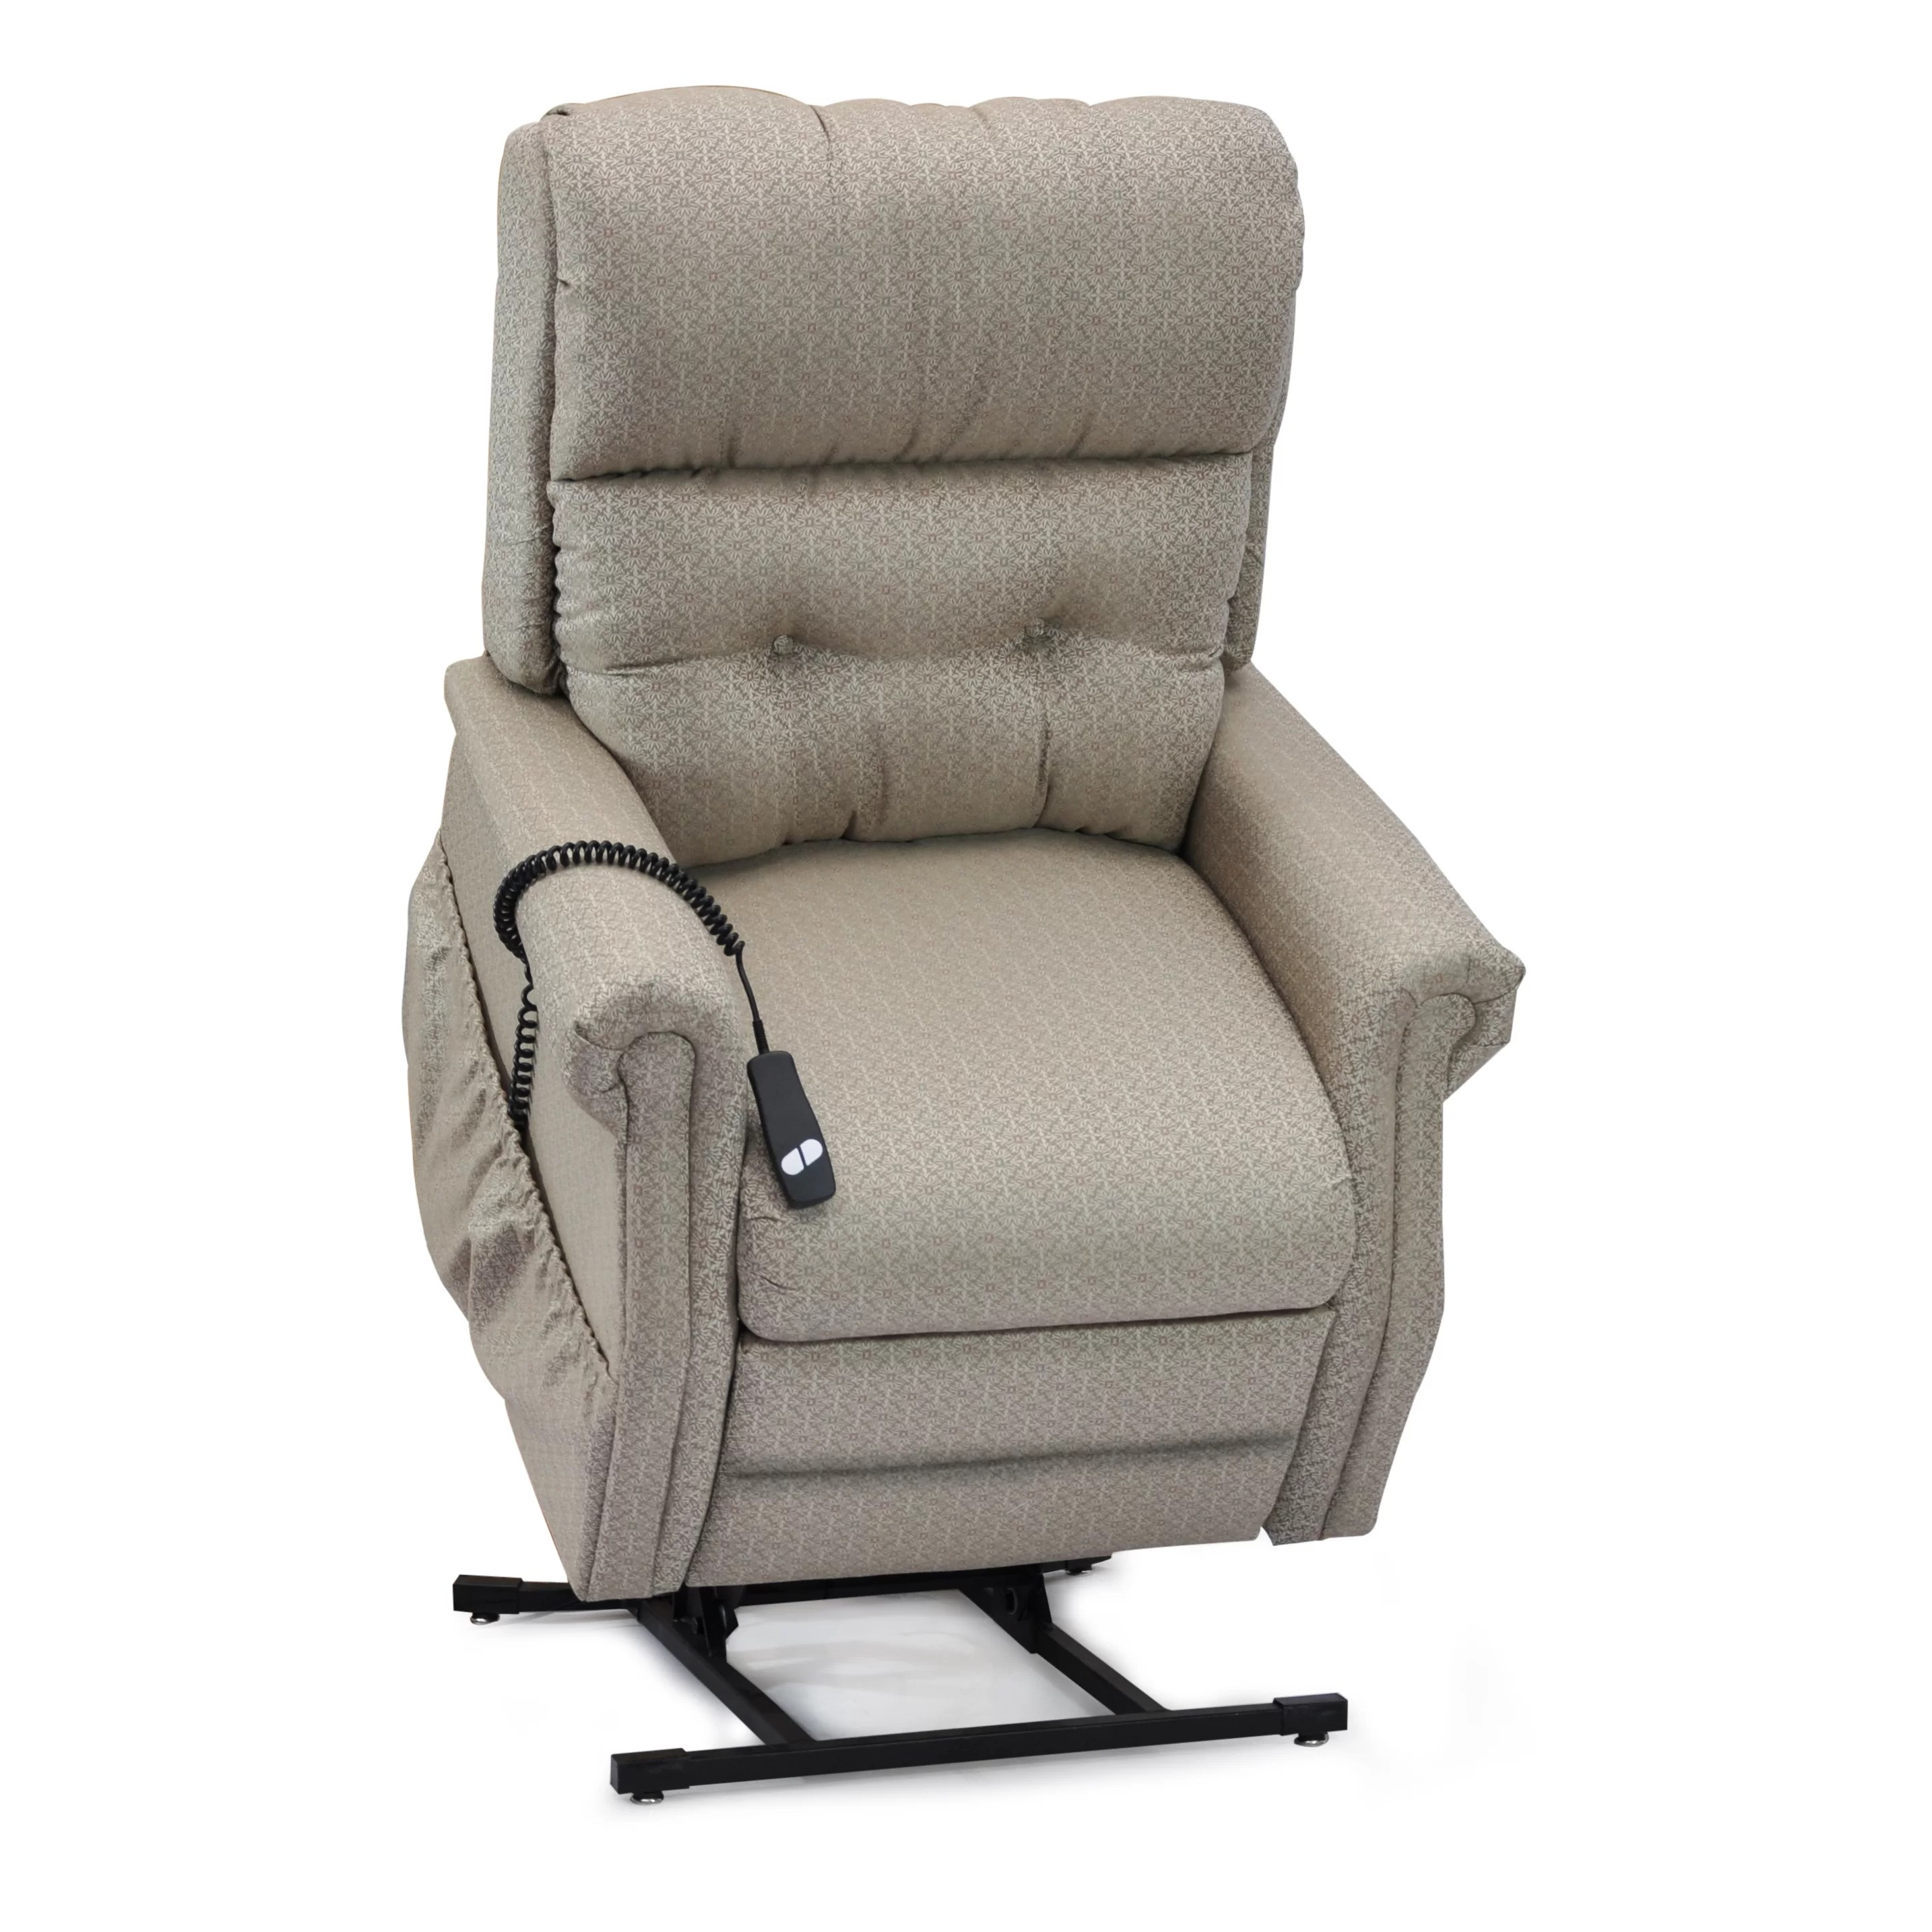 Med Lift Chairs Med Lift Two Way Reclining Lift Chair Wayfair